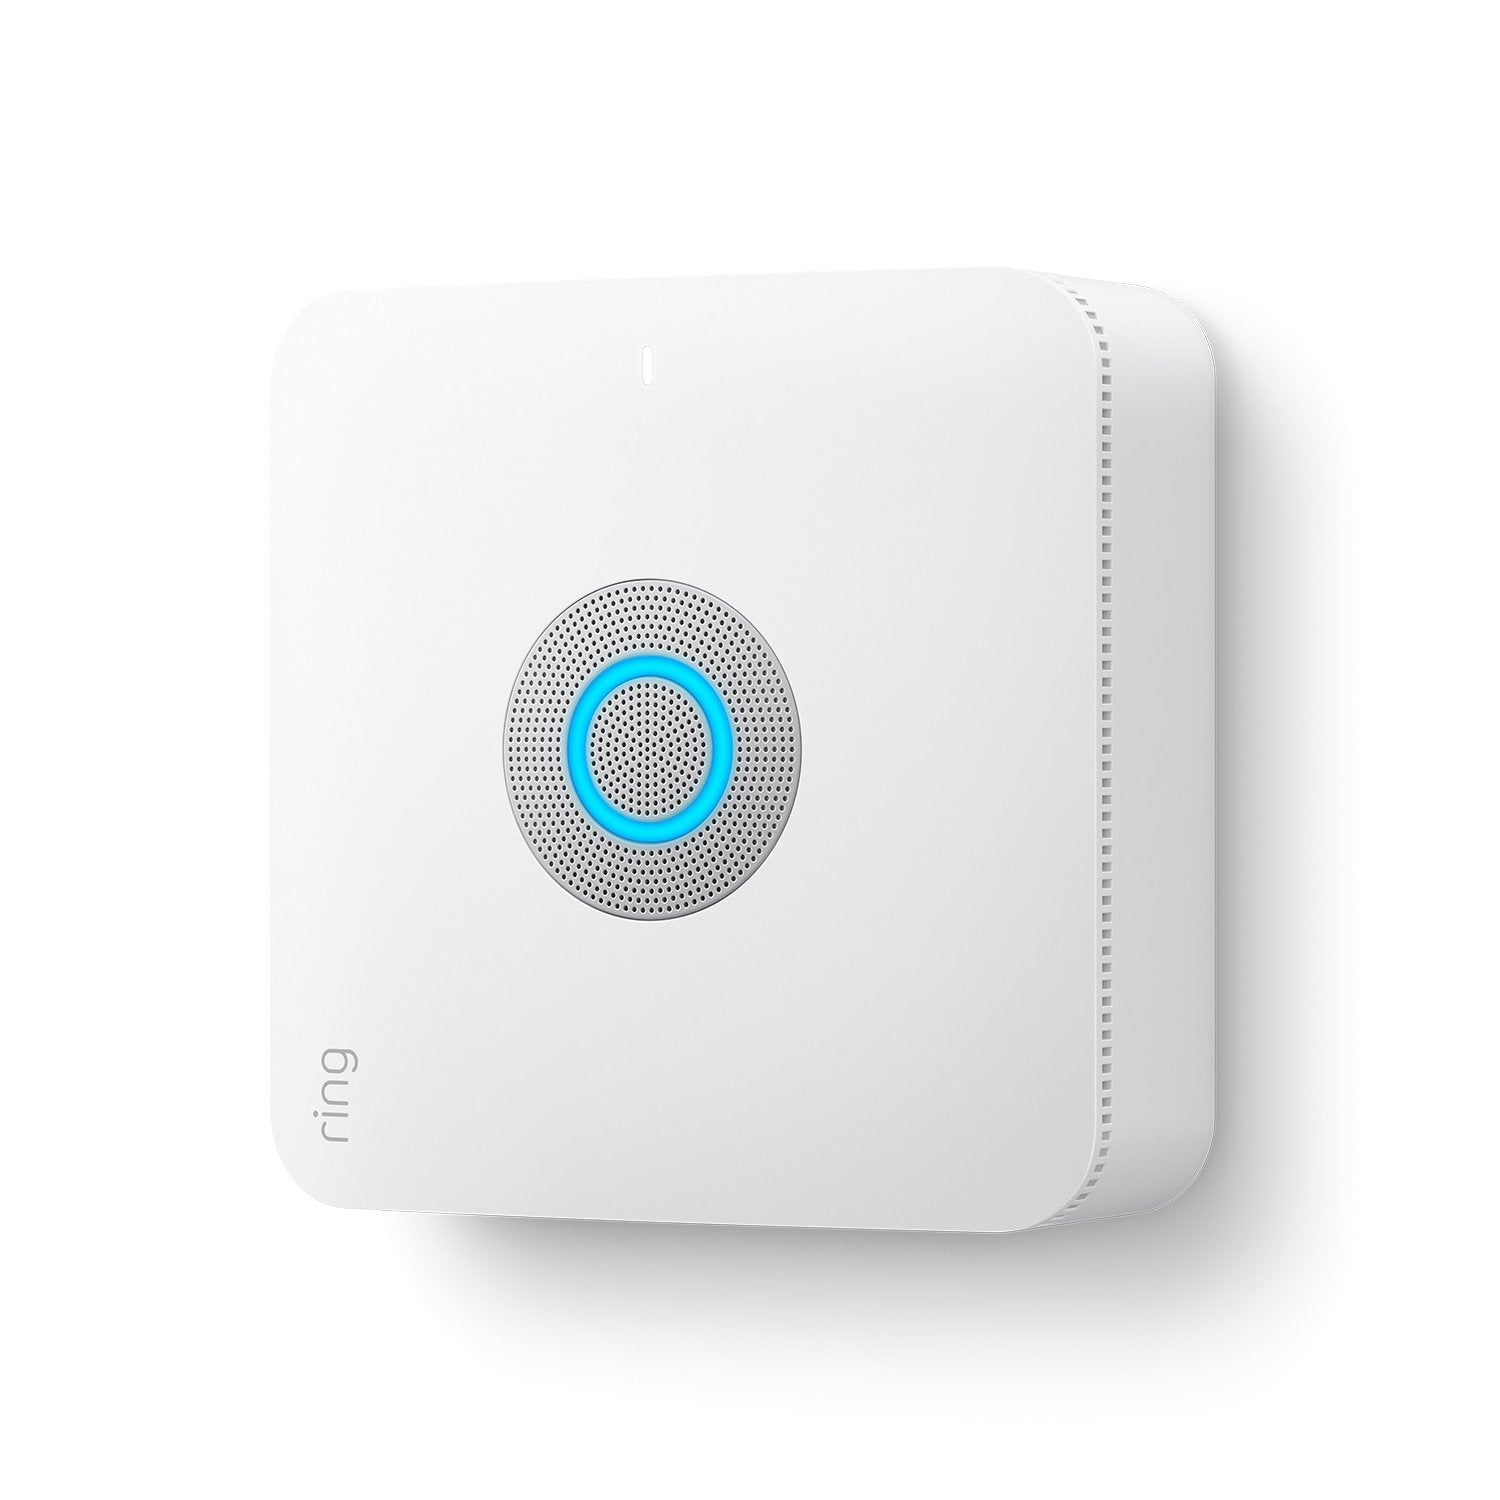 Alarm Pro Base Station (for with built-in eero Wi-Fi 6 router) - White